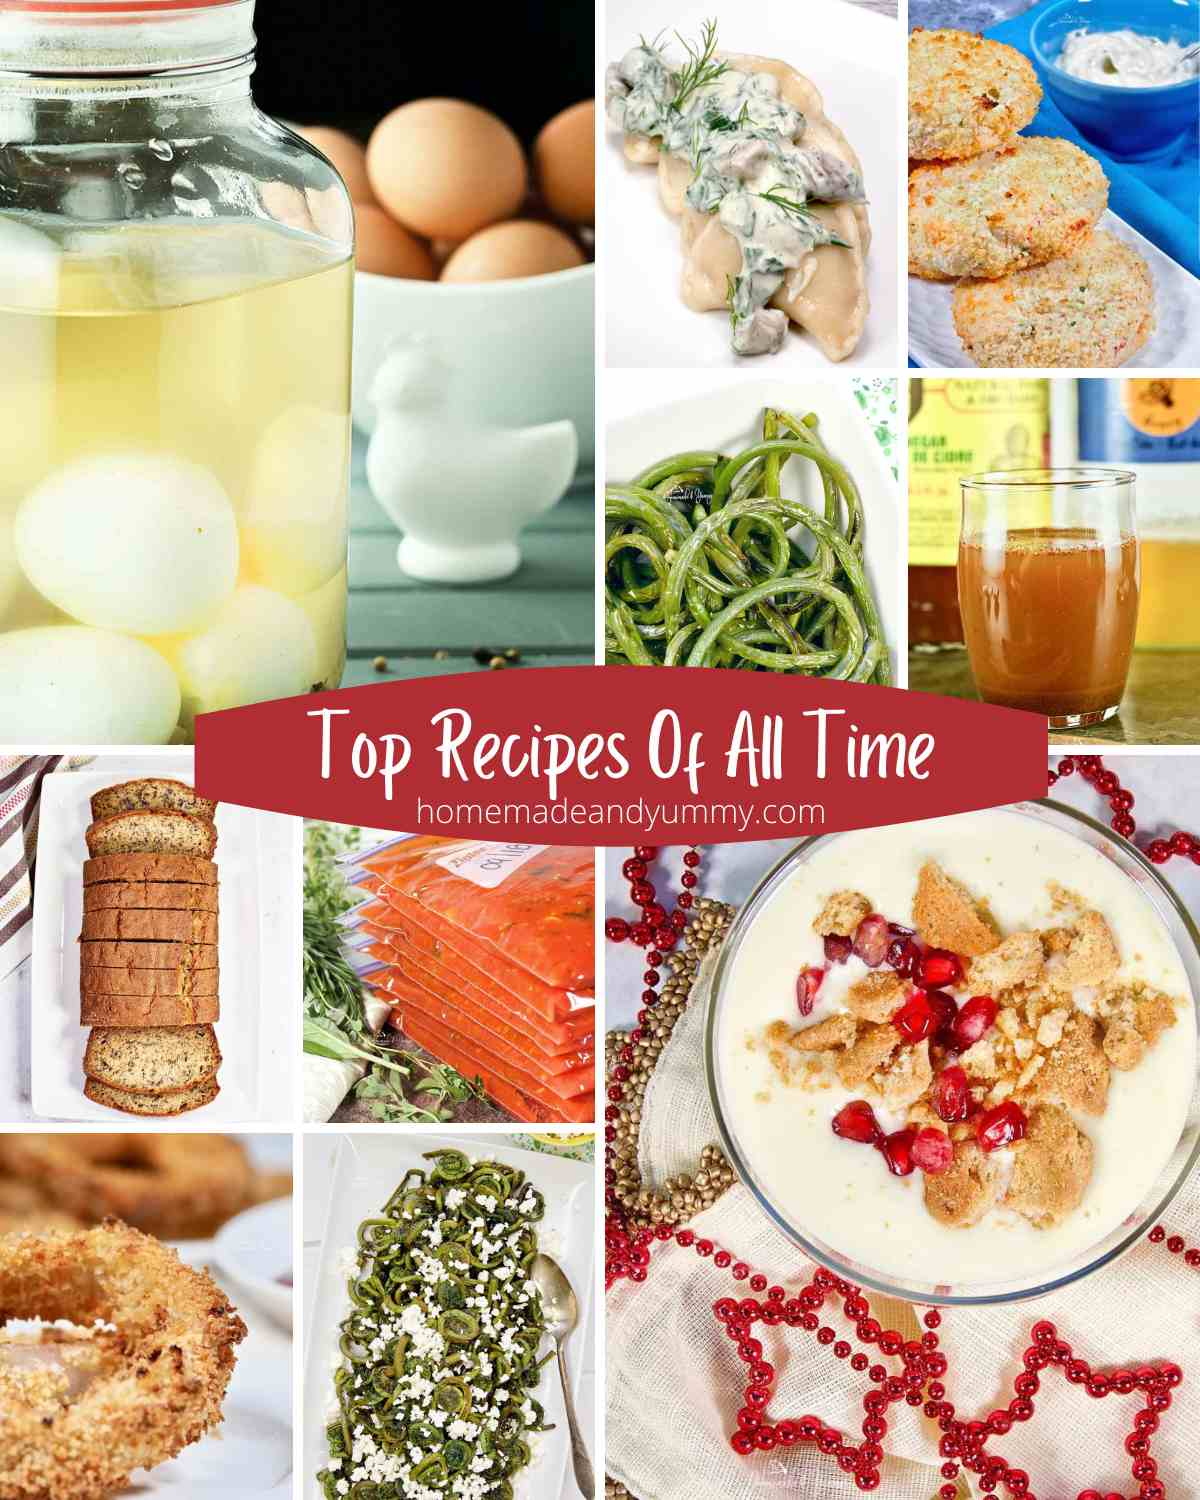 Top Recipes Of All Time